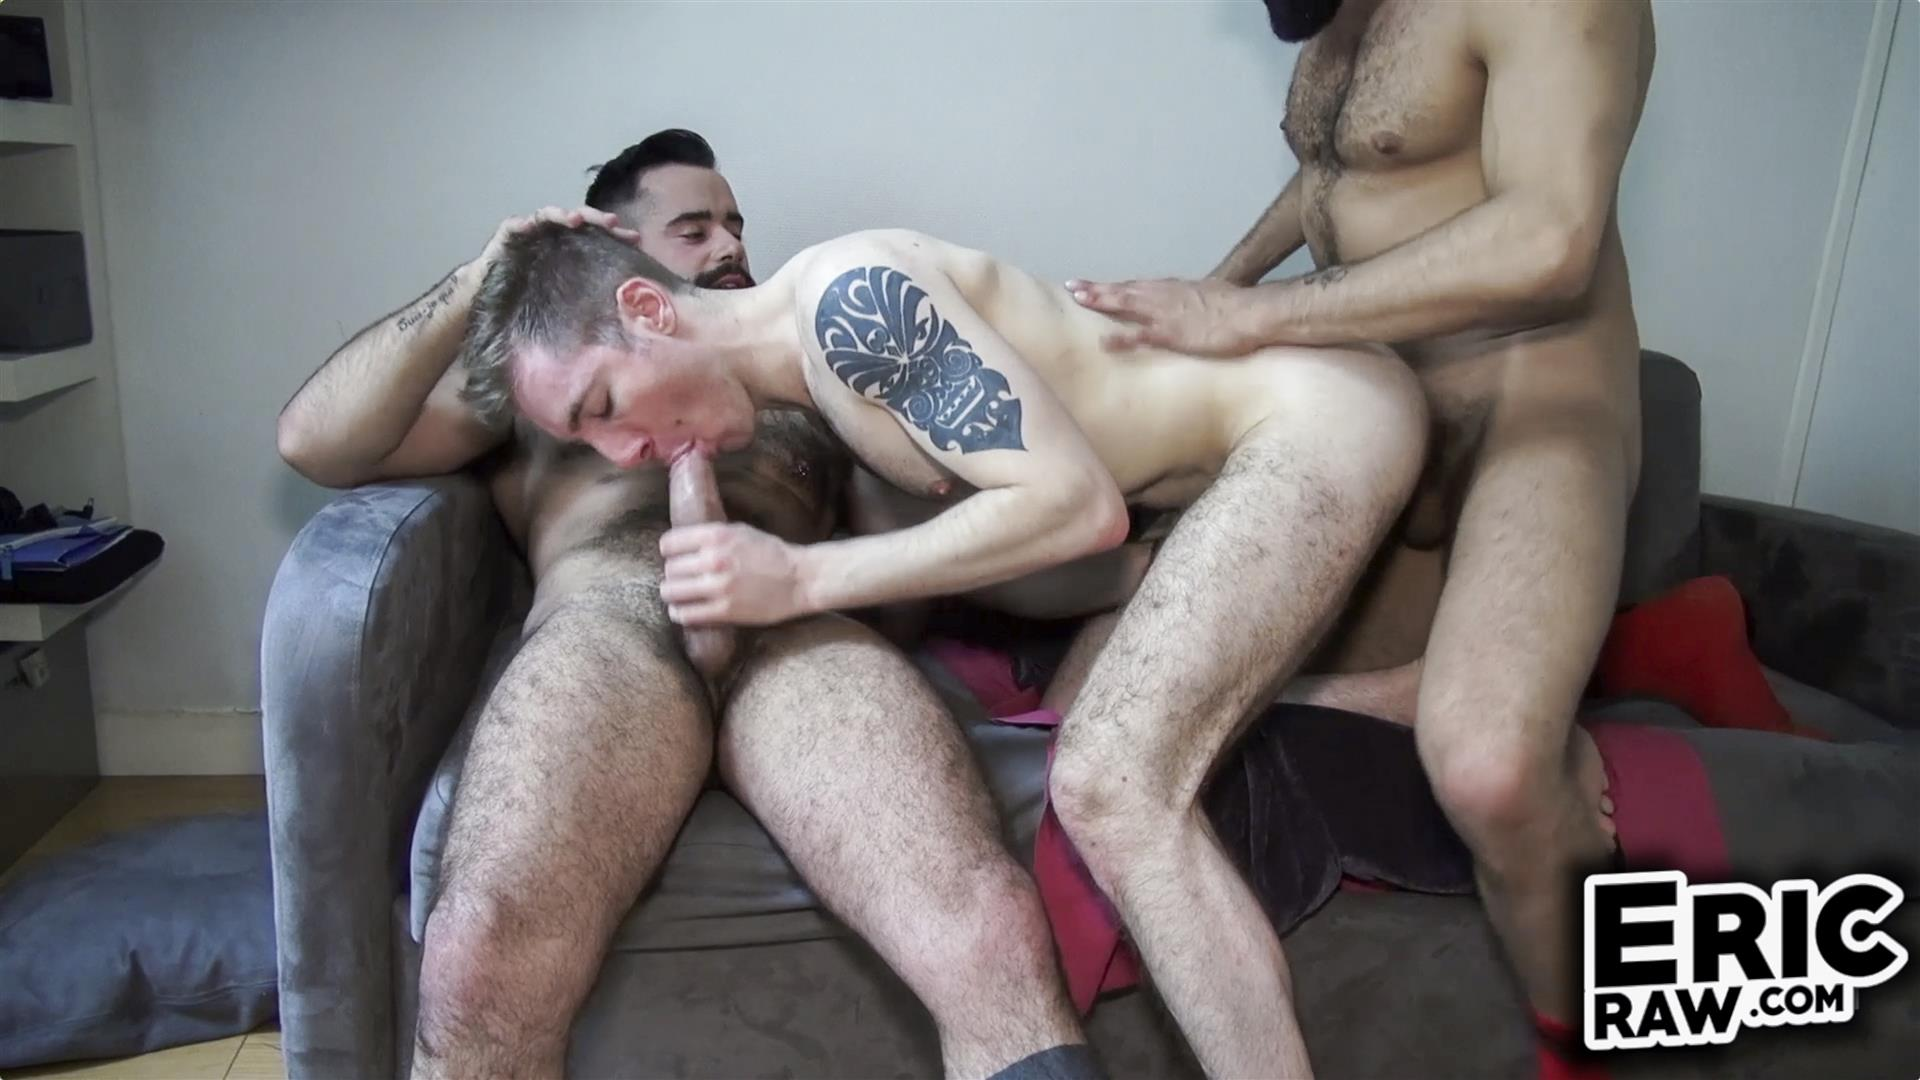 Eric Raw Bareback Threesome Hairy Muscle Hunks Amateur 01 Bareback Fuck Date With Three Hairy Muscular Jocks